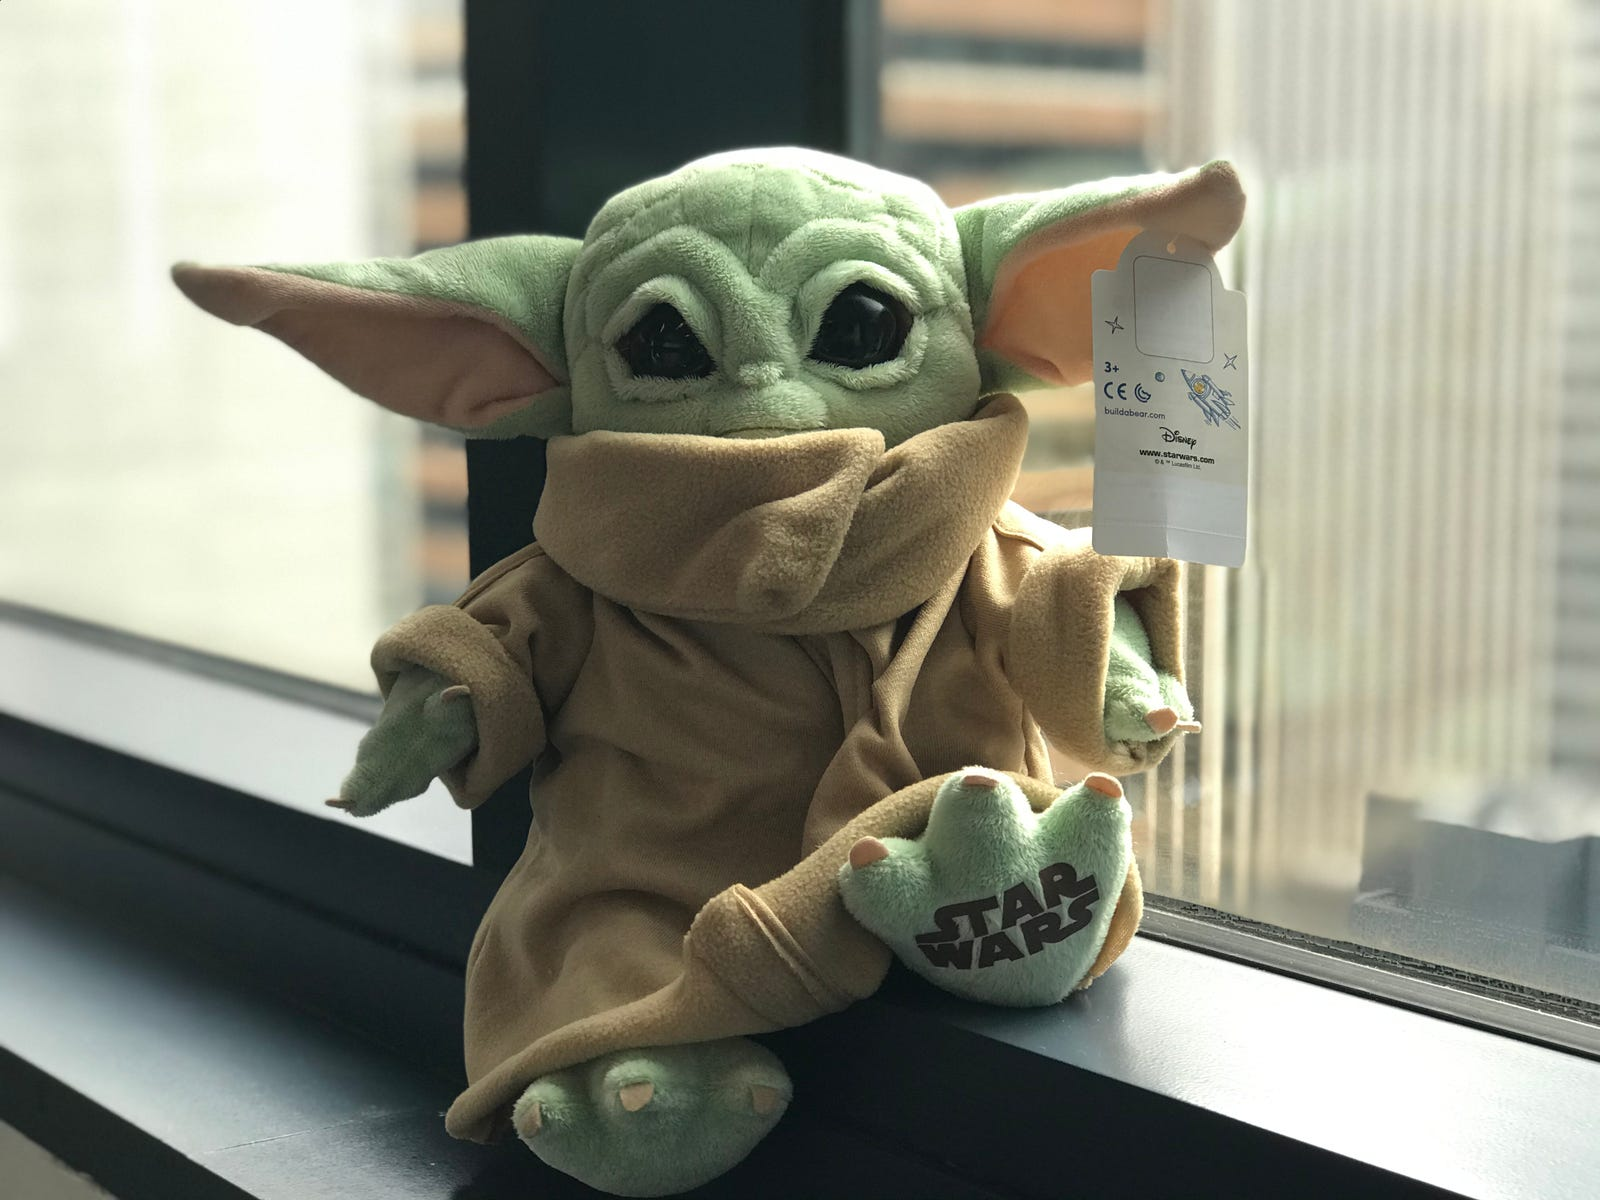 Build-A-Bear's Baby Yoda plush.